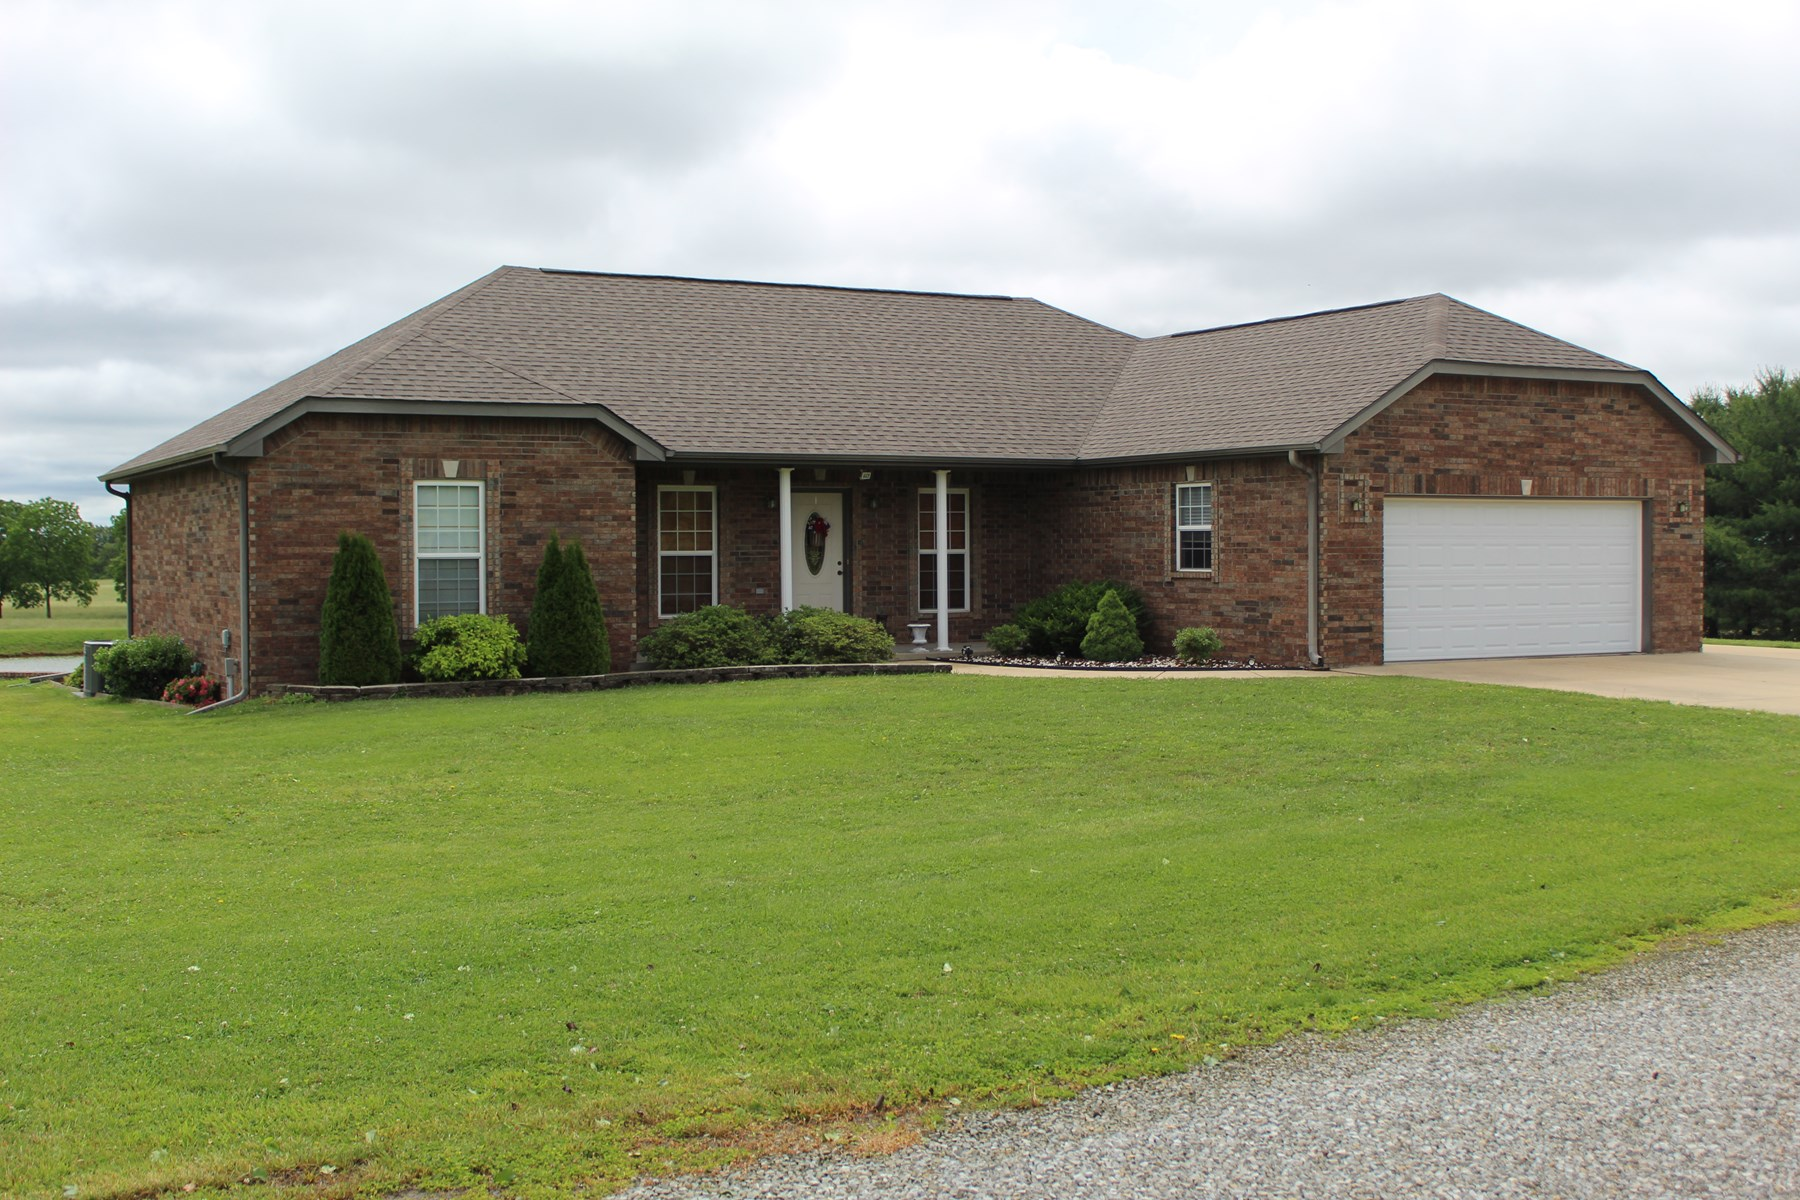 Country Home with Land for Sale in South Central Missouri